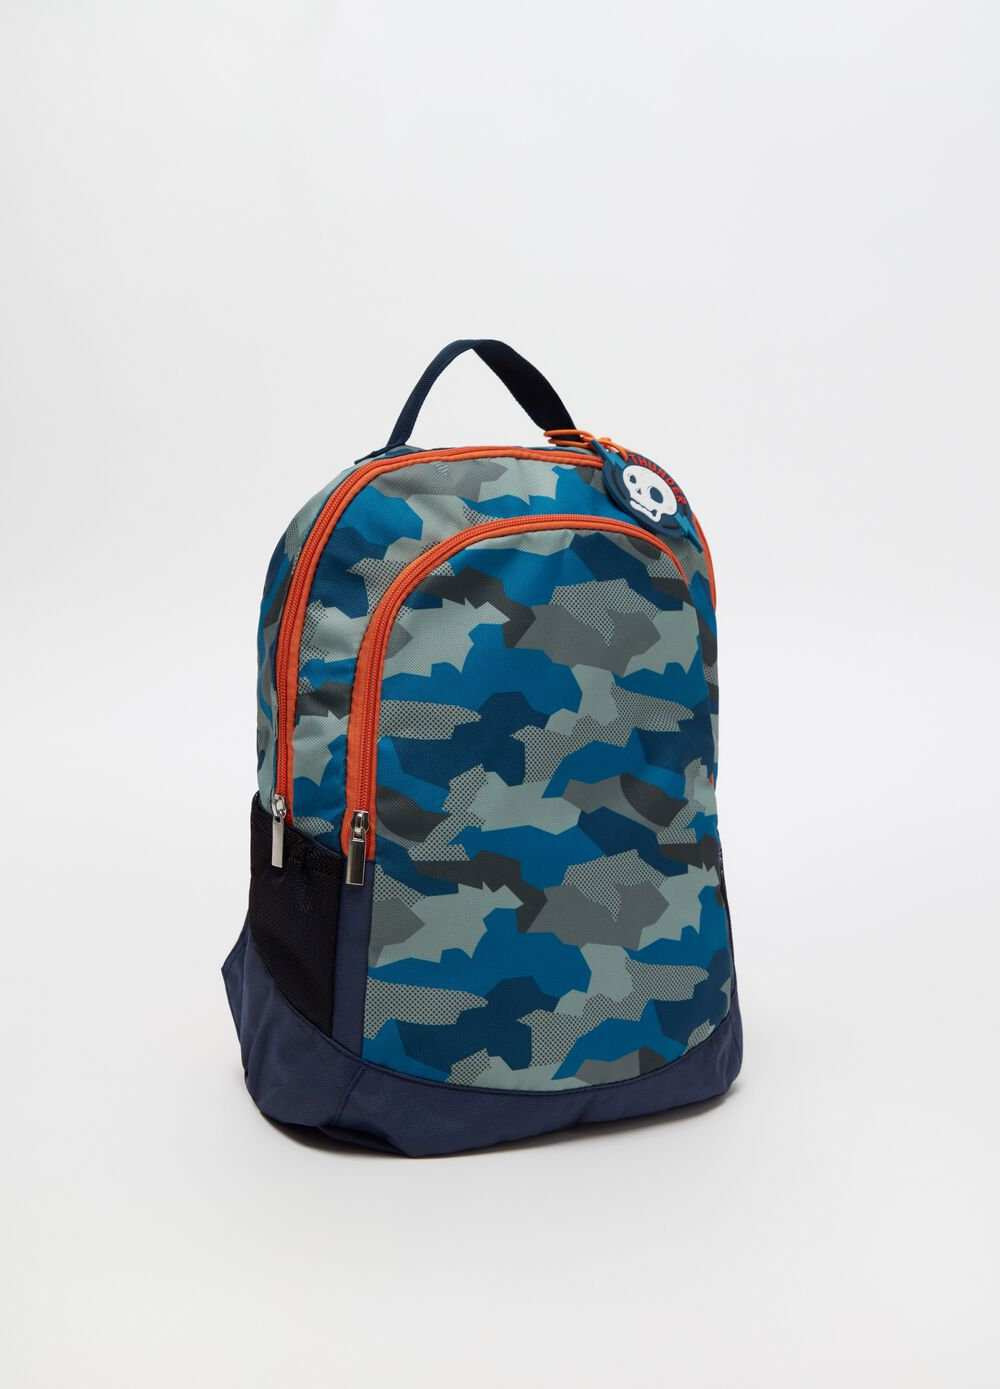 Camouflage backpack with double compartment